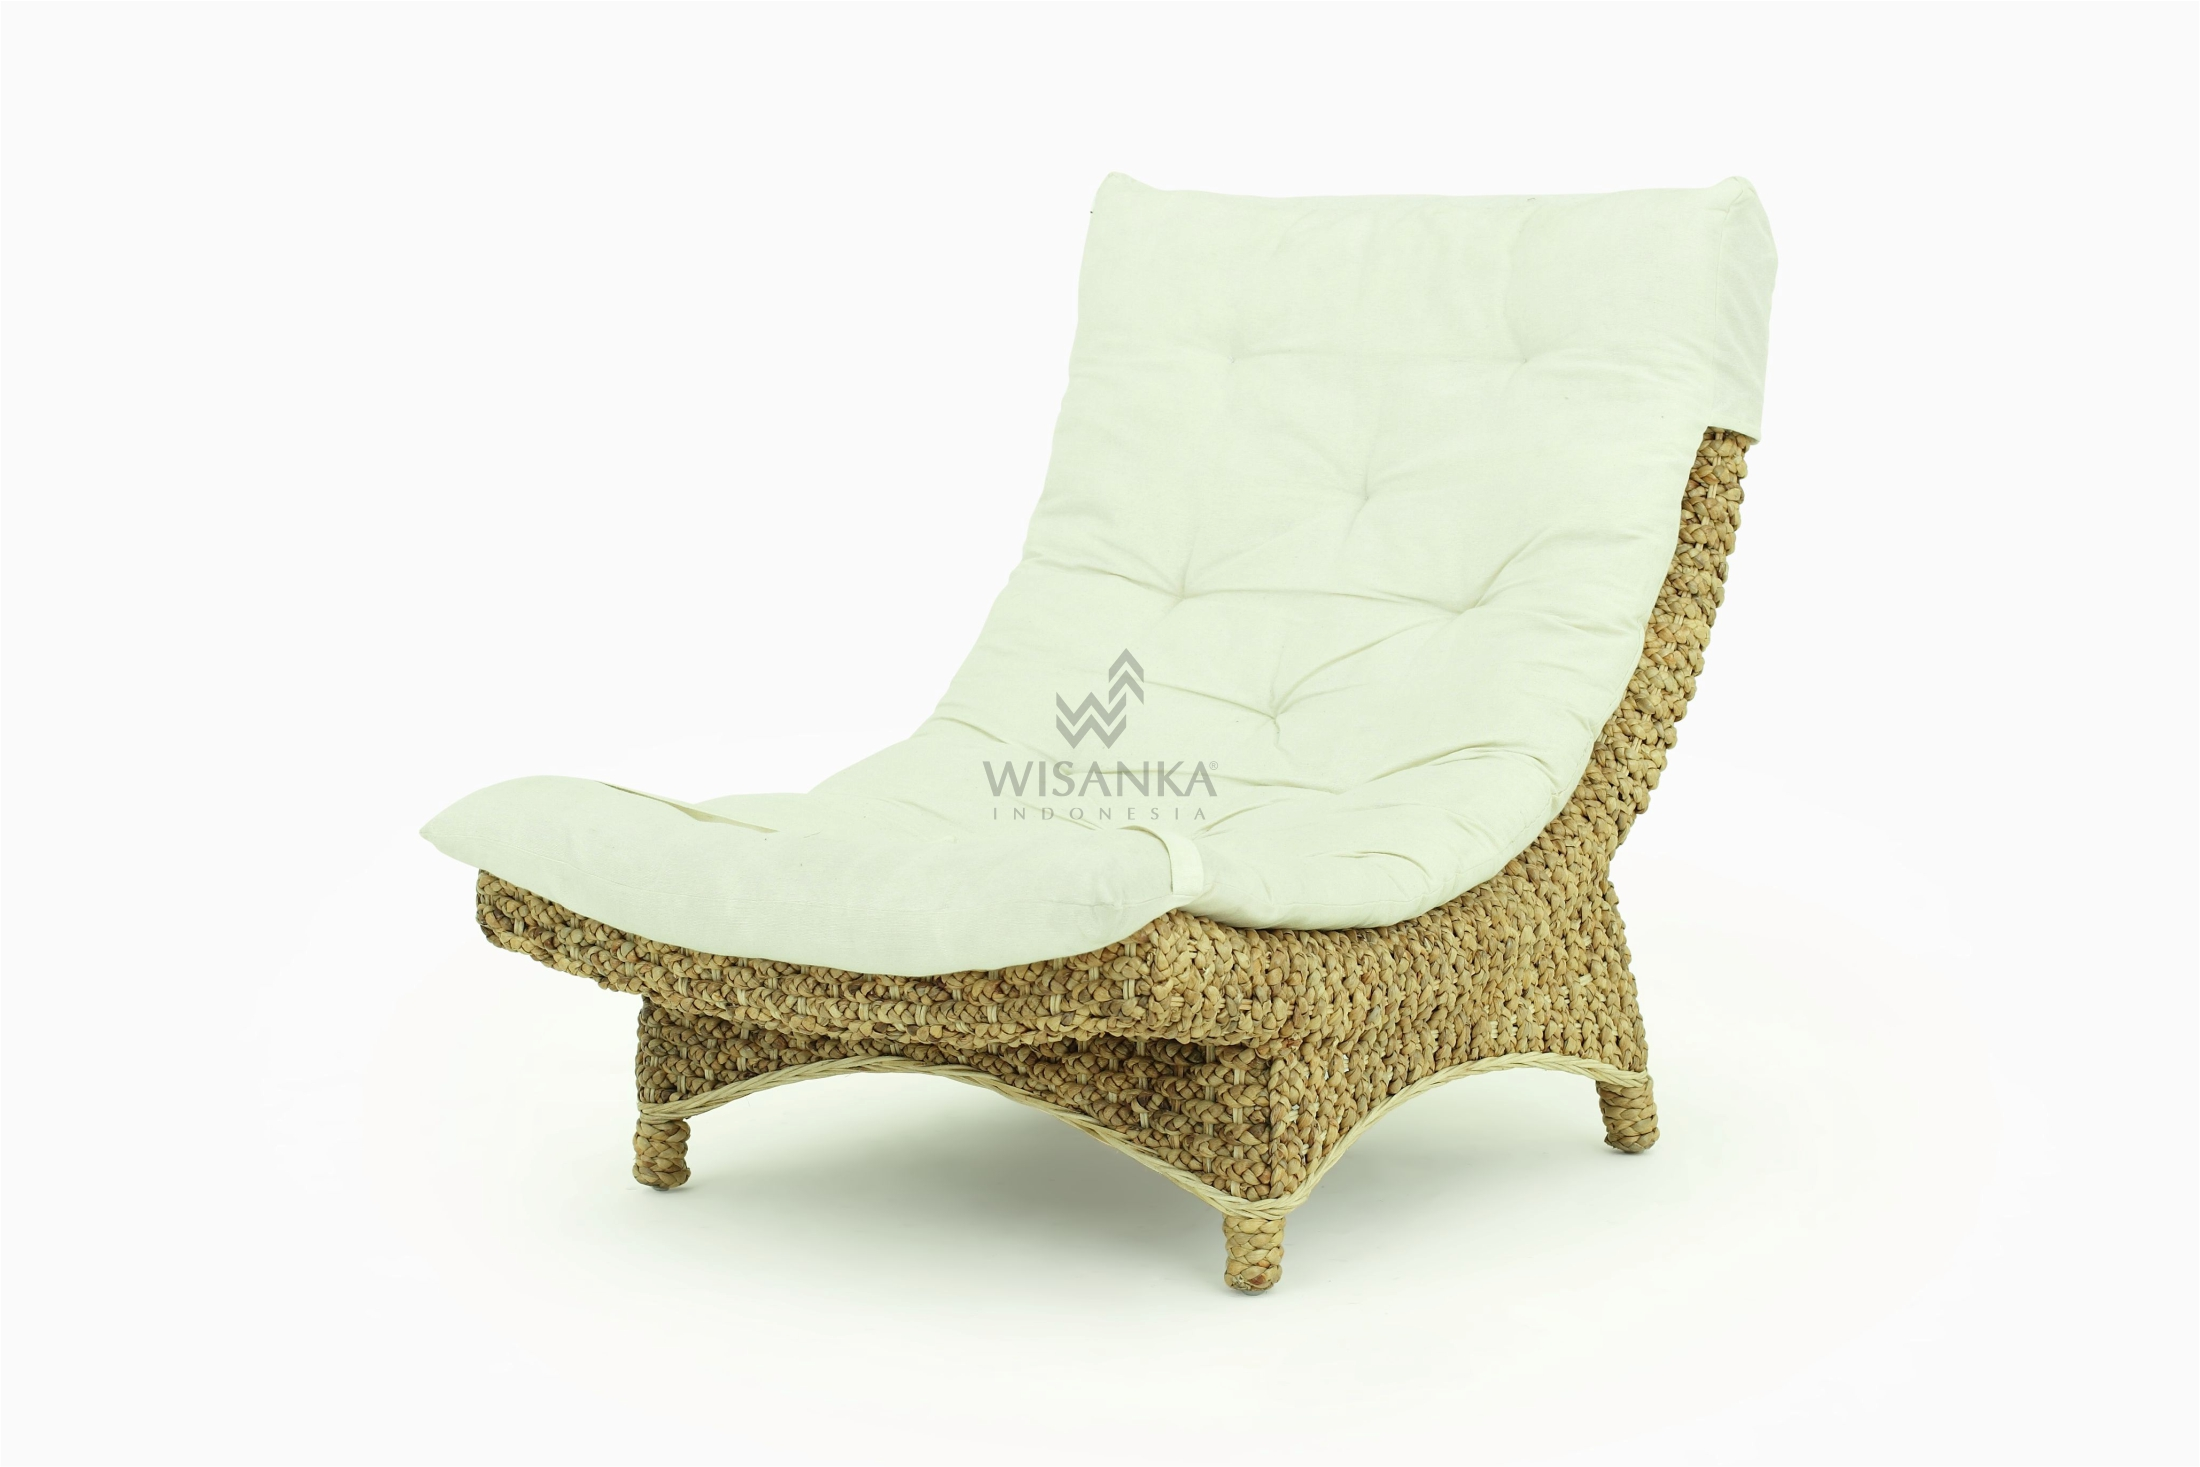 Moon Wicker Lazy Chair Indonesia Teak Java Furniture Manufacturer Project And Wholesale